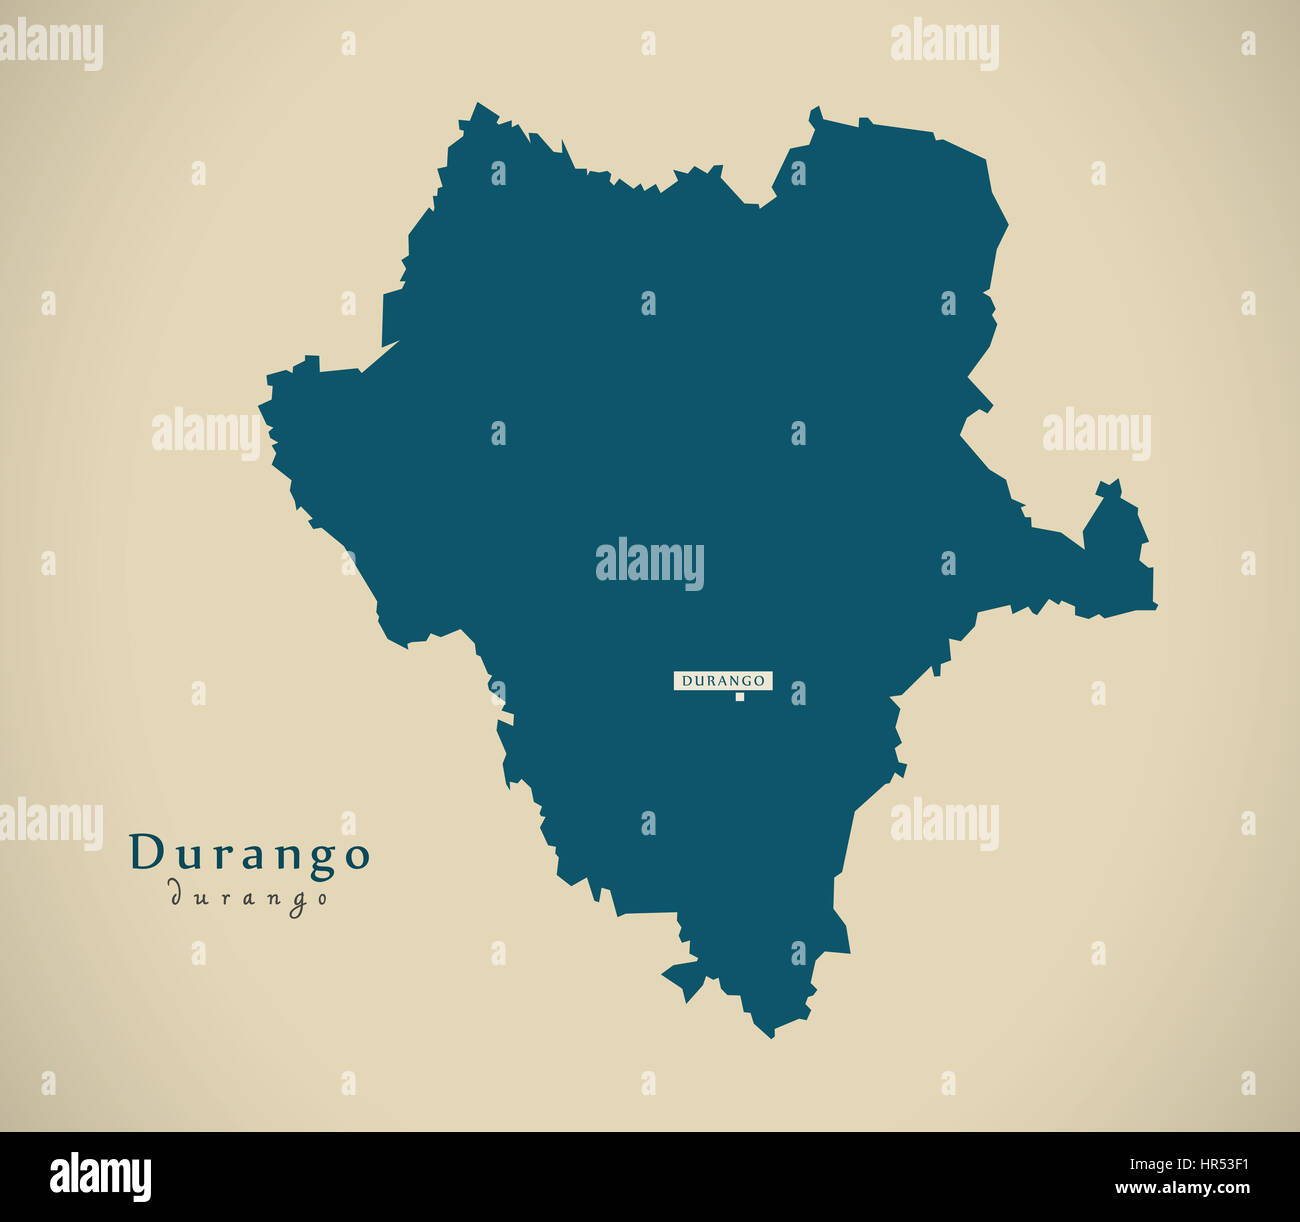 state of durango mexico map Map Of Durango High Resolution Stock Photography And Images Alamy